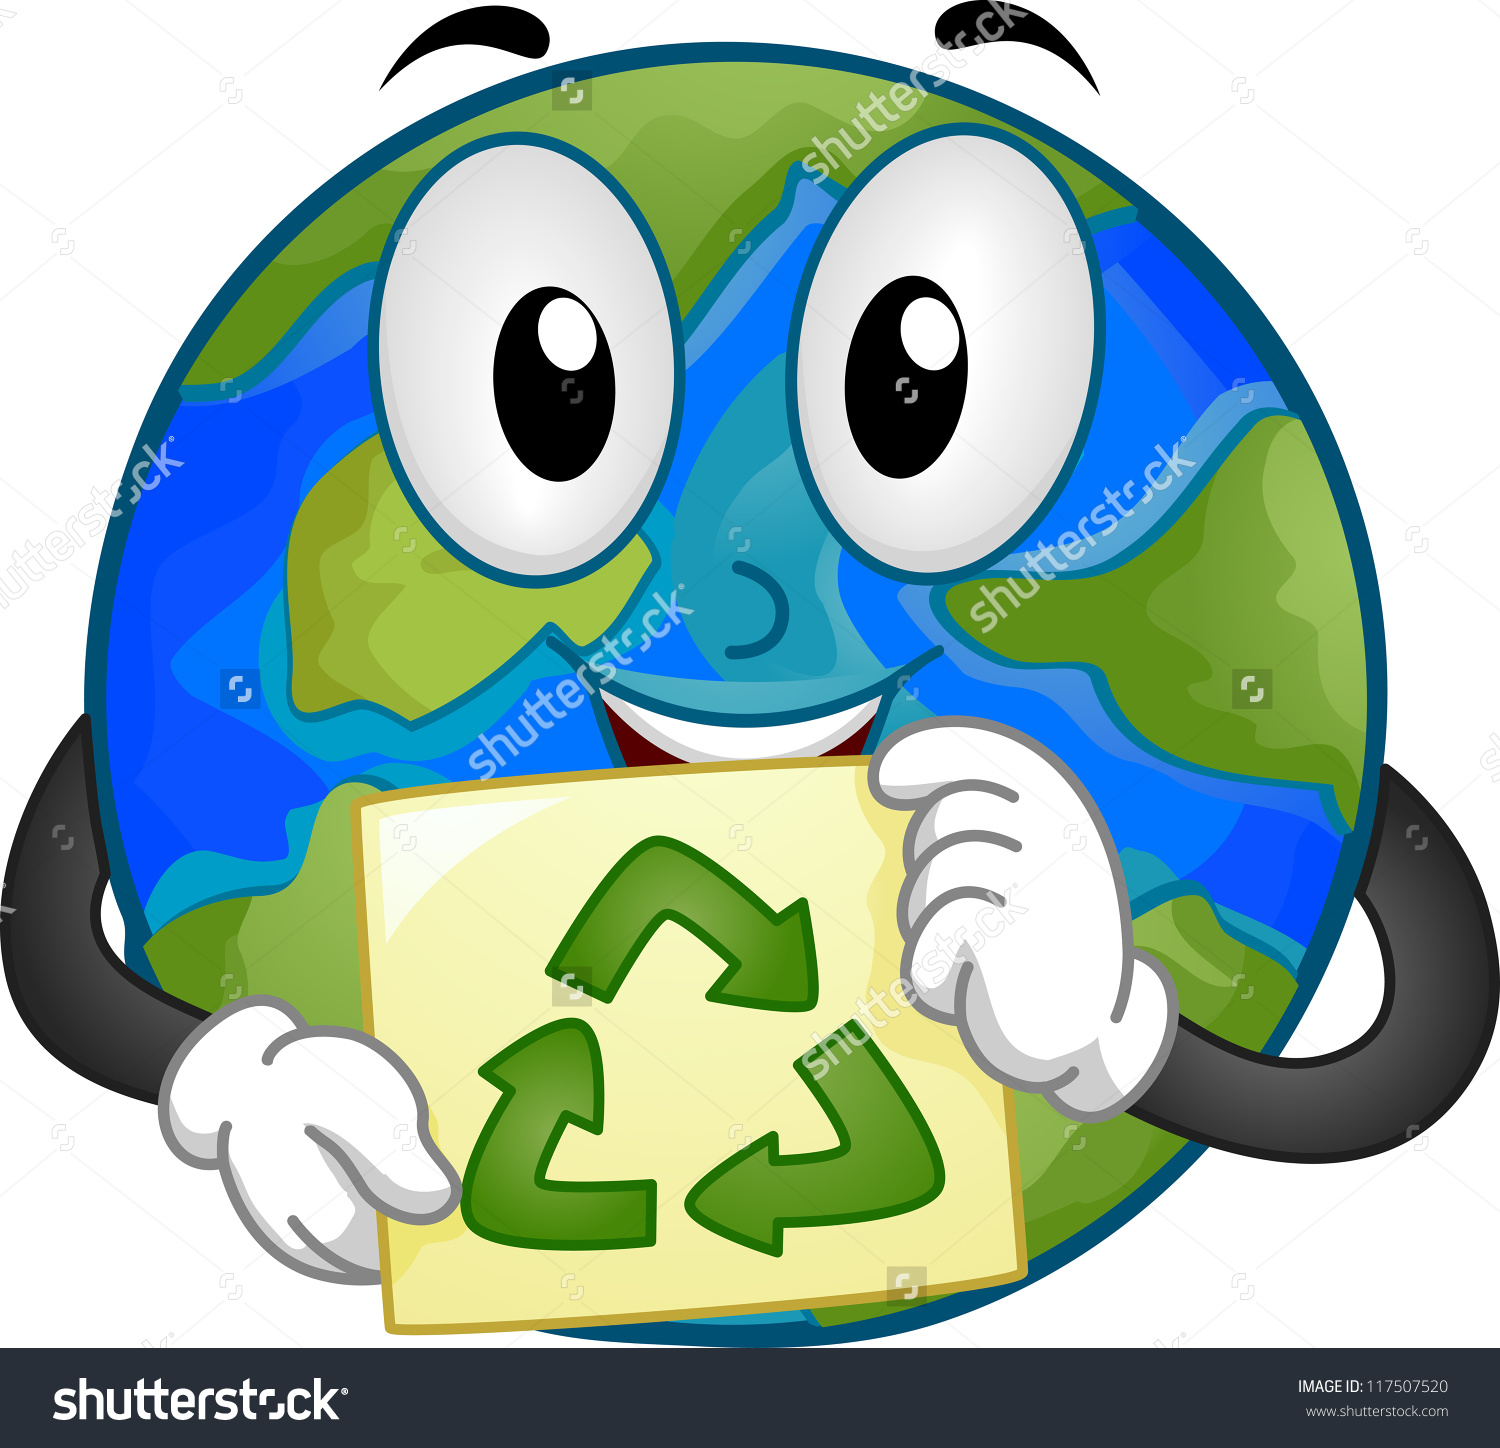 Mascot Illustration Featuring Earth Holding Recycling Stock Vector.